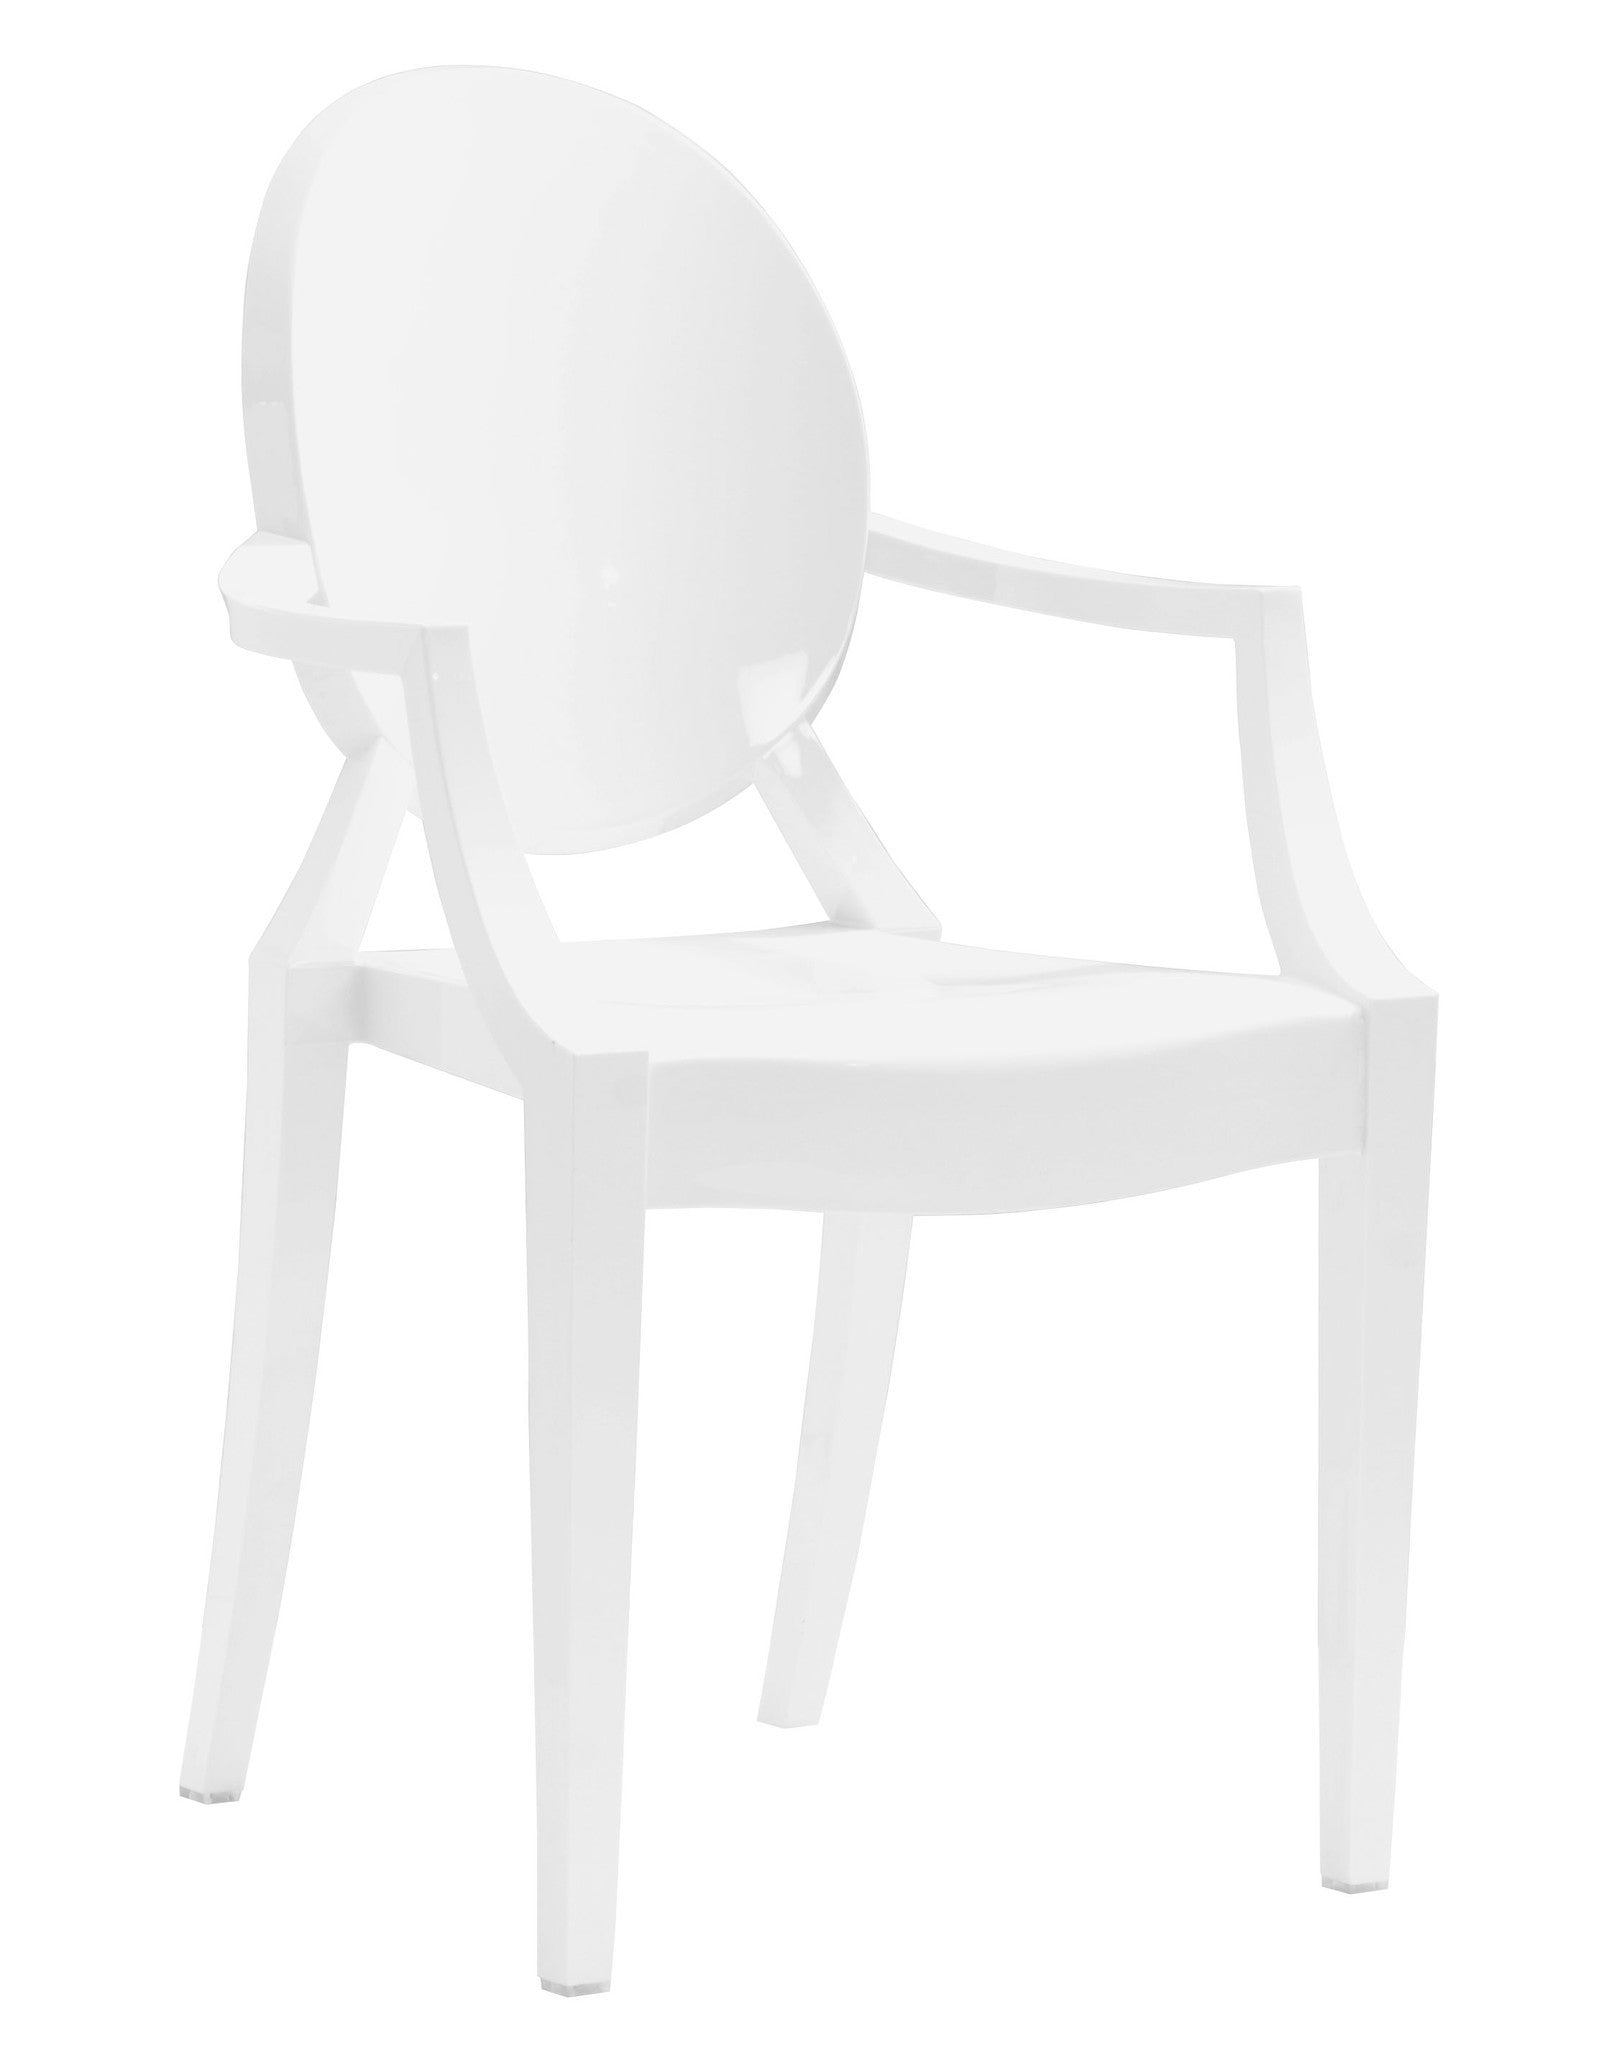 Anime Dining Chair In White Polycarbonate (Set Of 4) Dining Chairs Alan ...